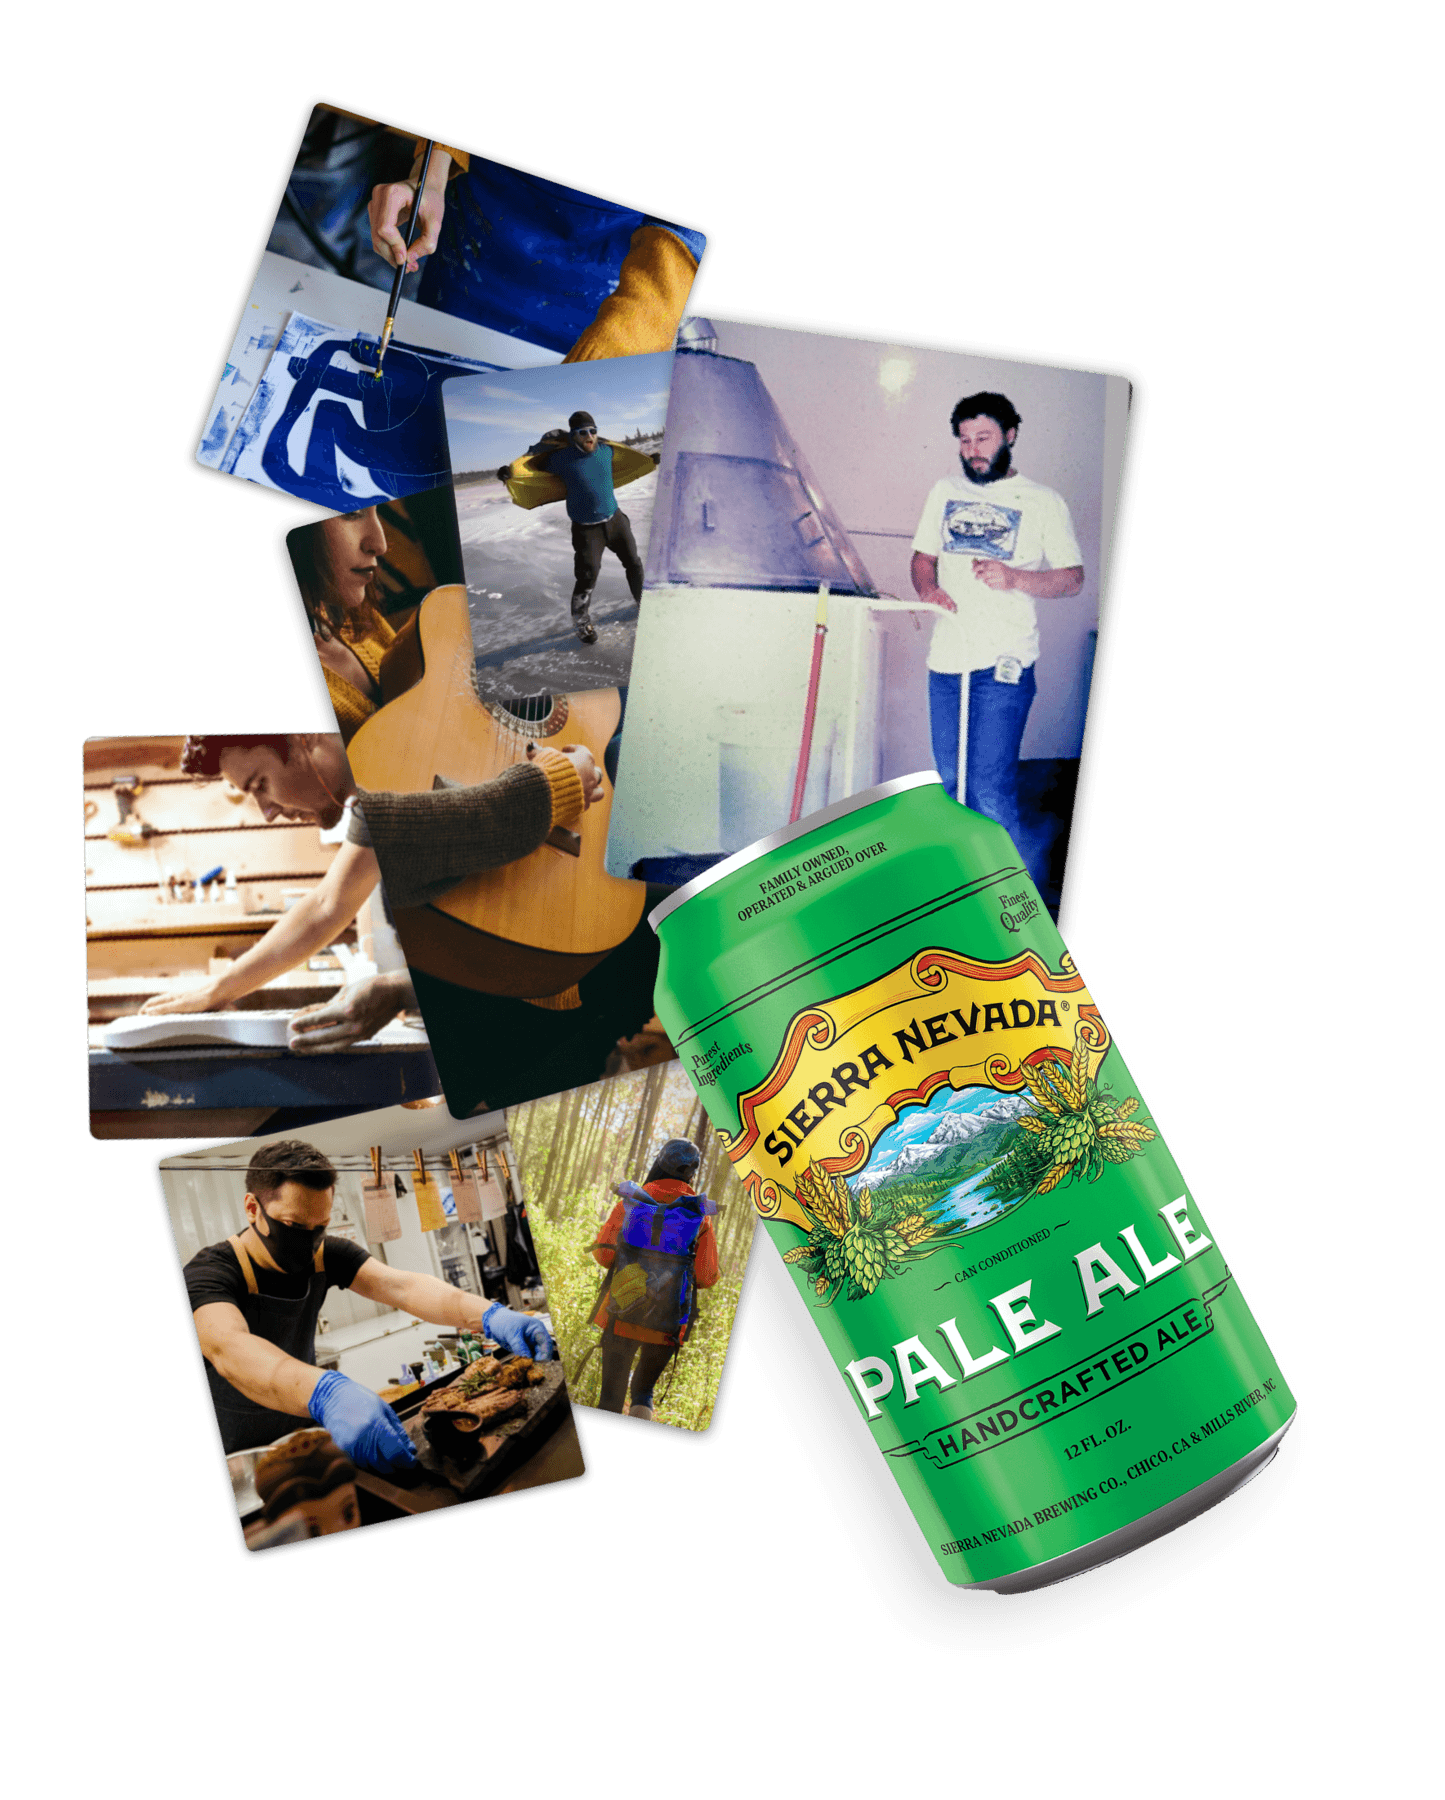 Collage of 4 images with can of  pale ale